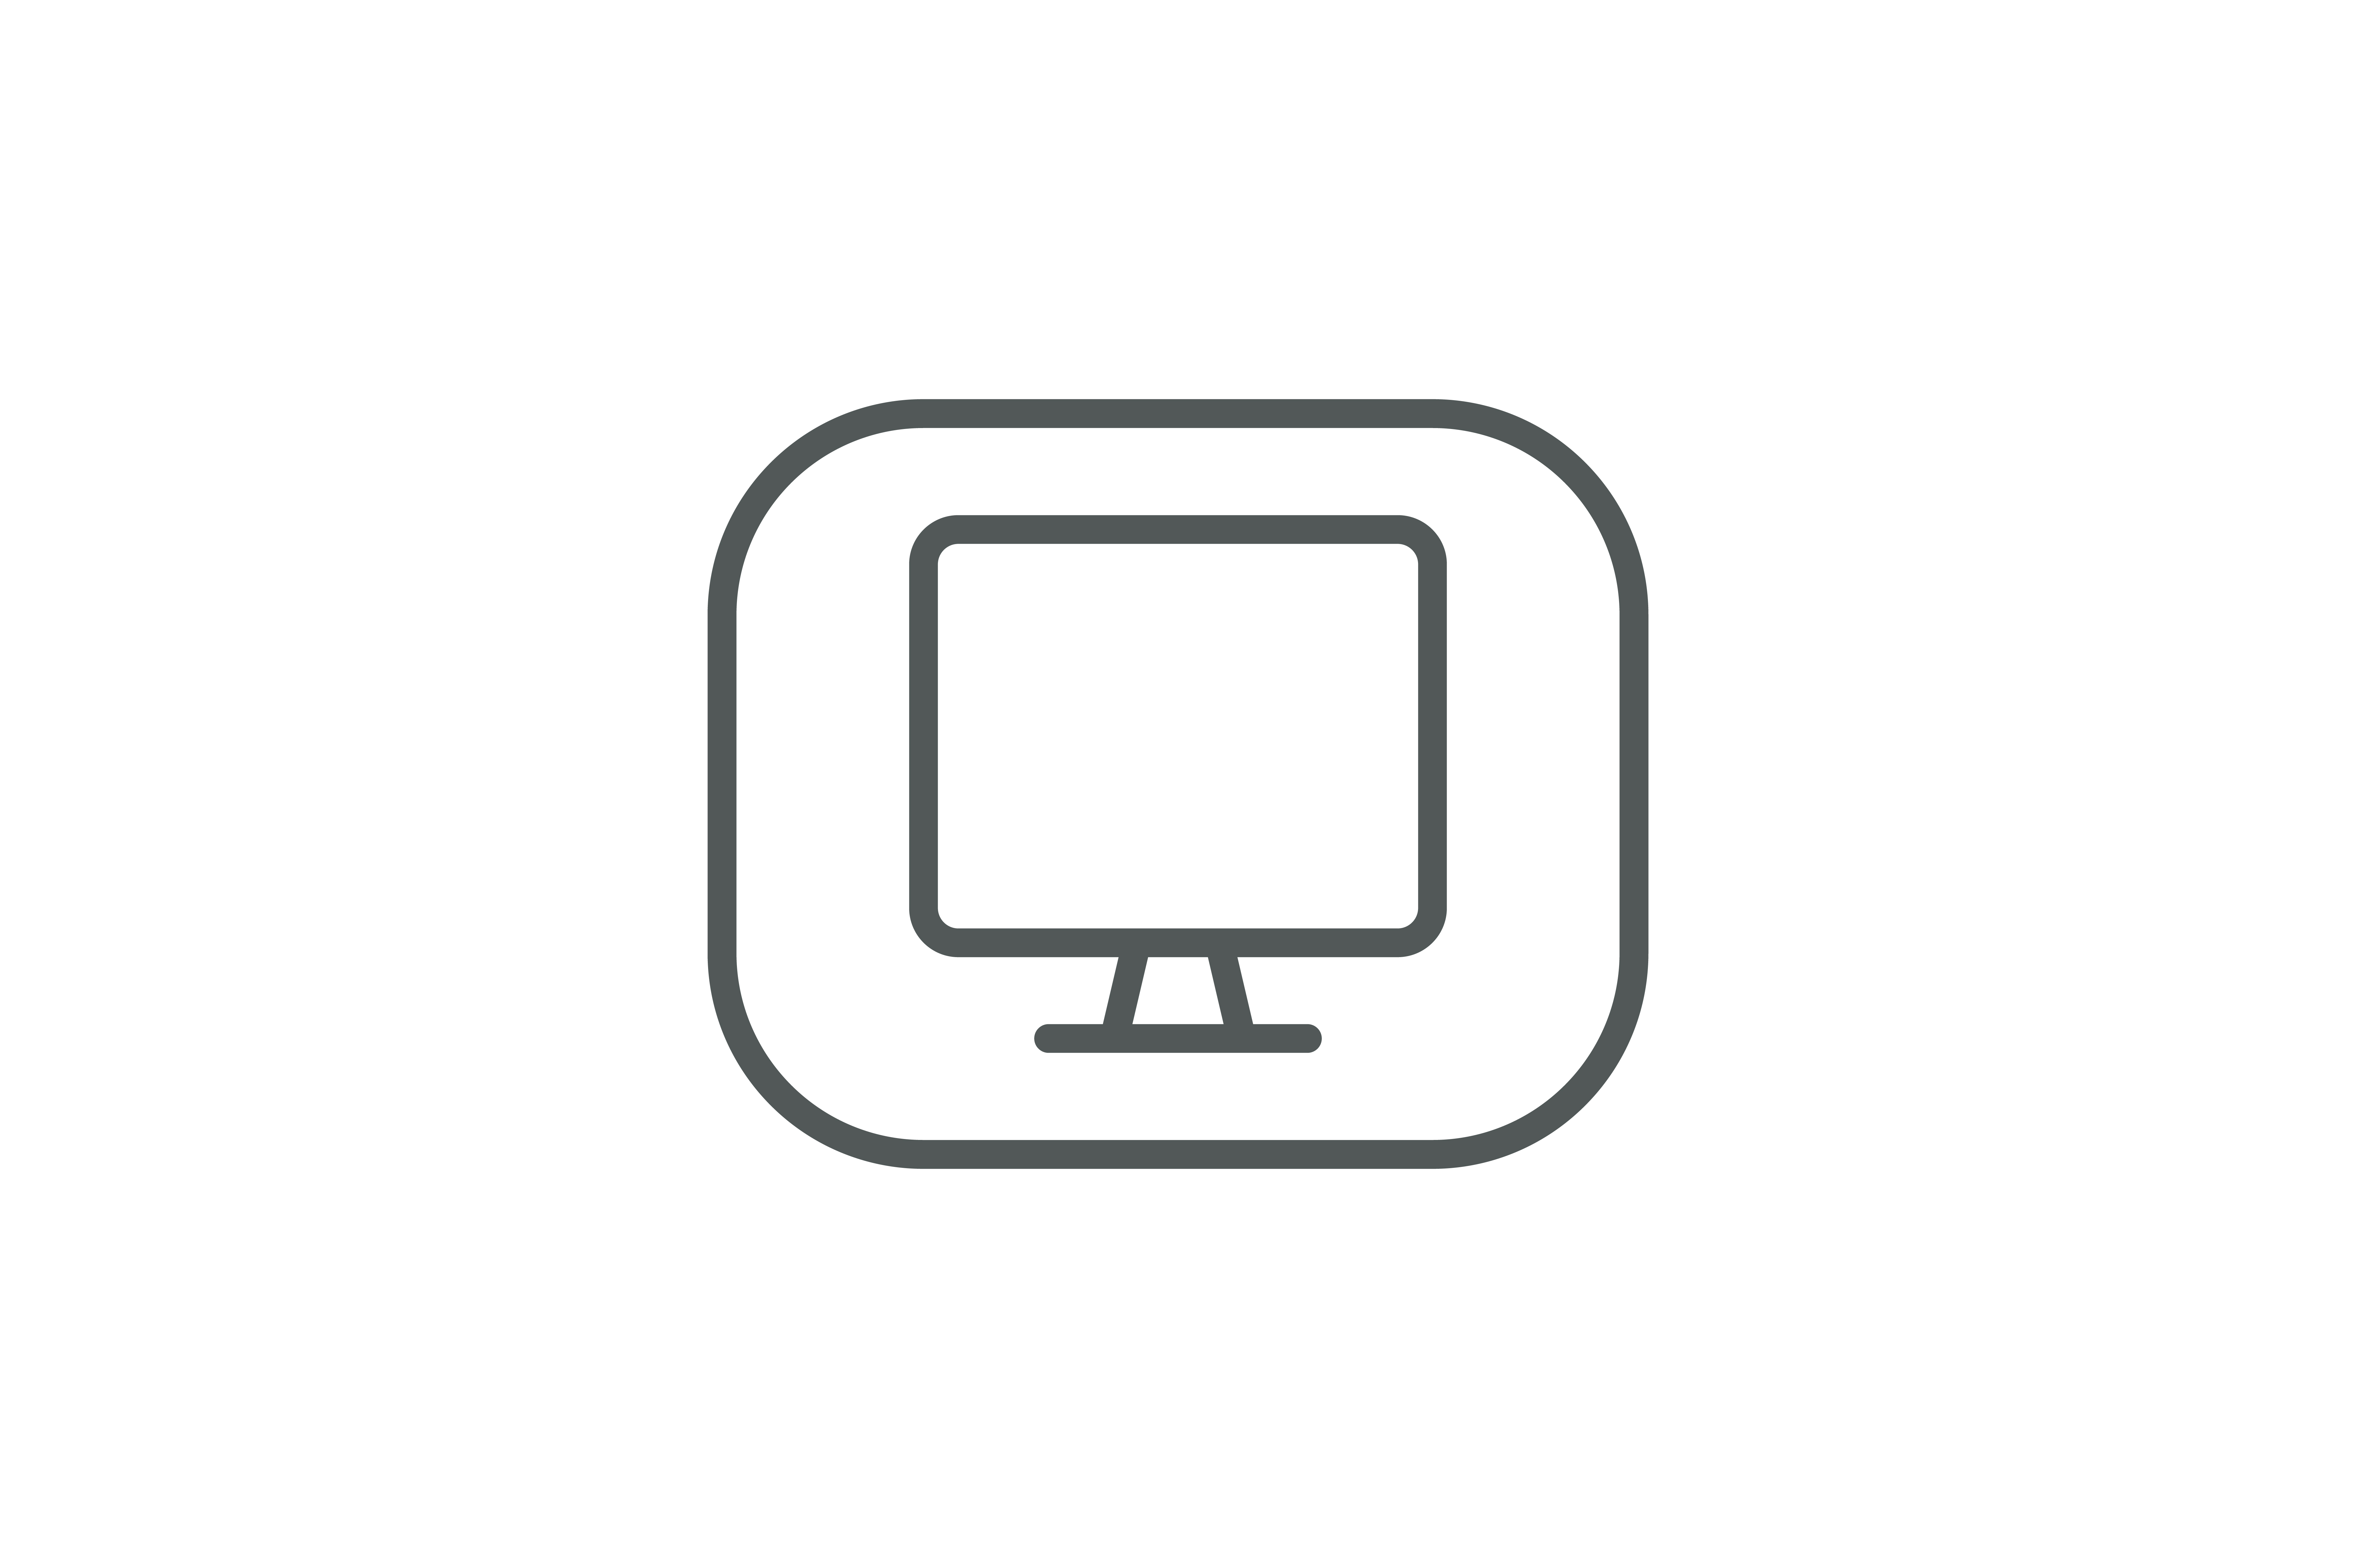 Download Free Video Movie Player Icon Graphic By Mayesari Creative Fabrica for Cricut Explore, Silhouette and other cutting machines.